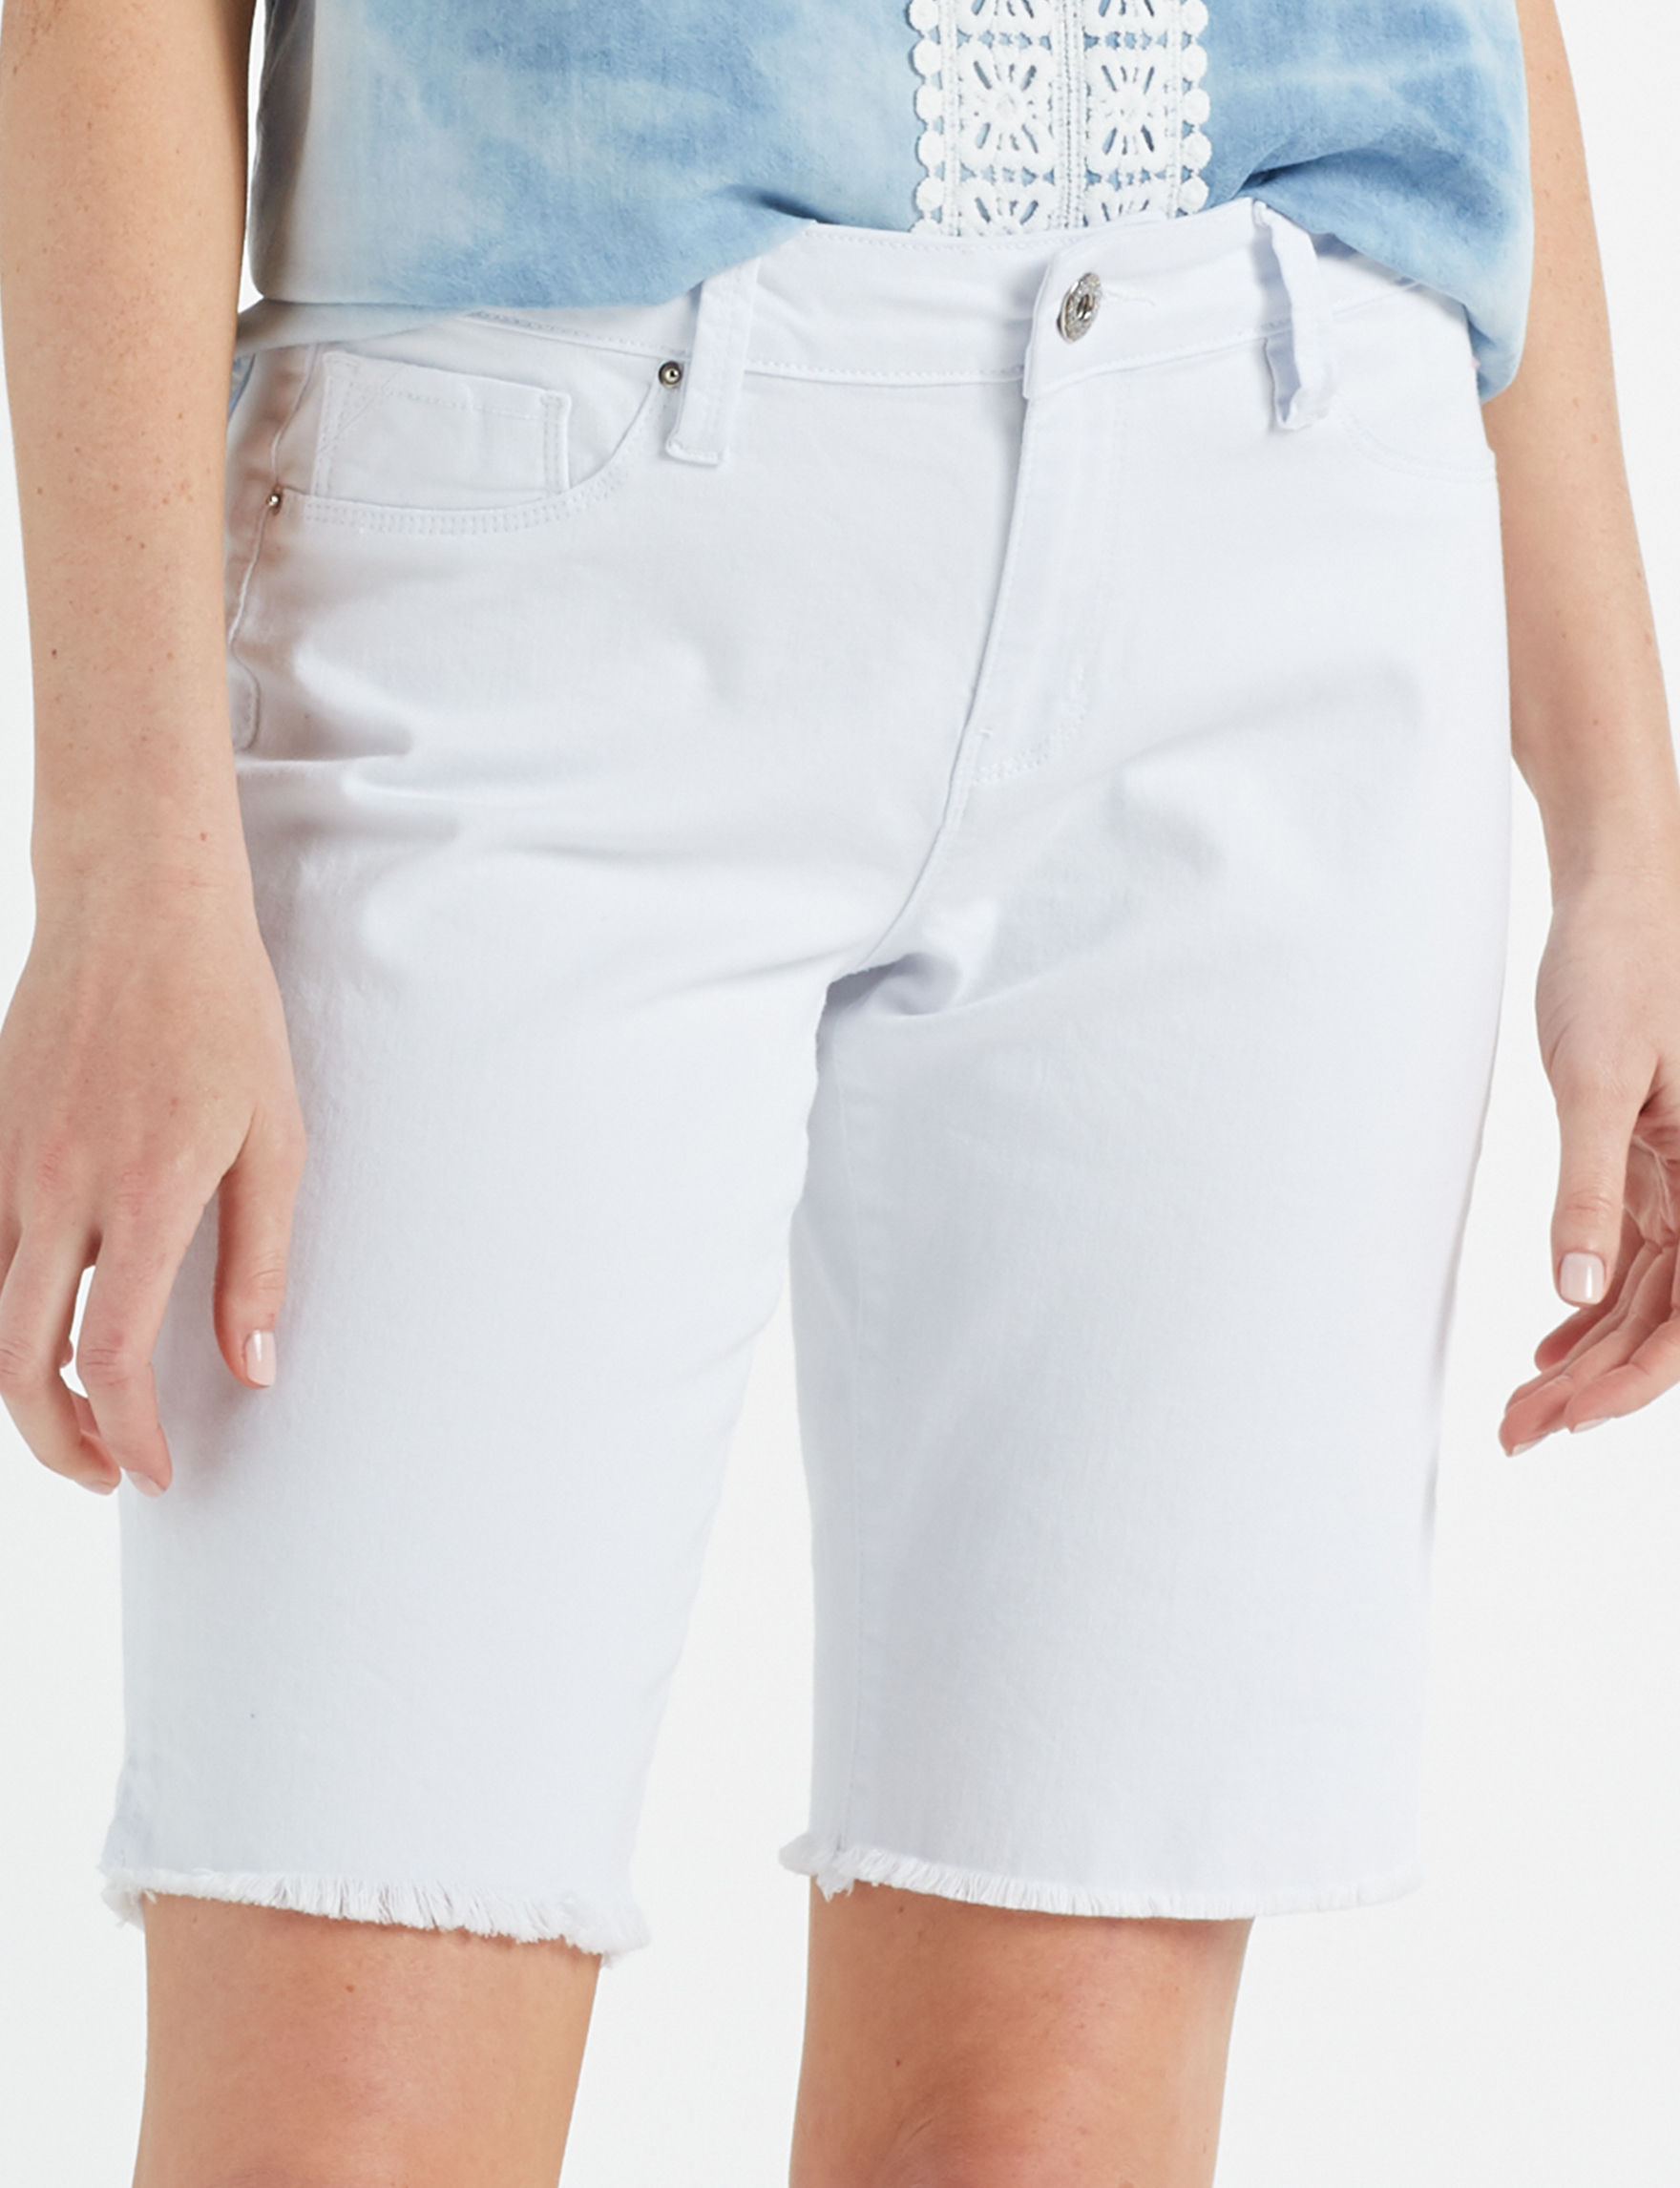 Signature Studio White Bermudas